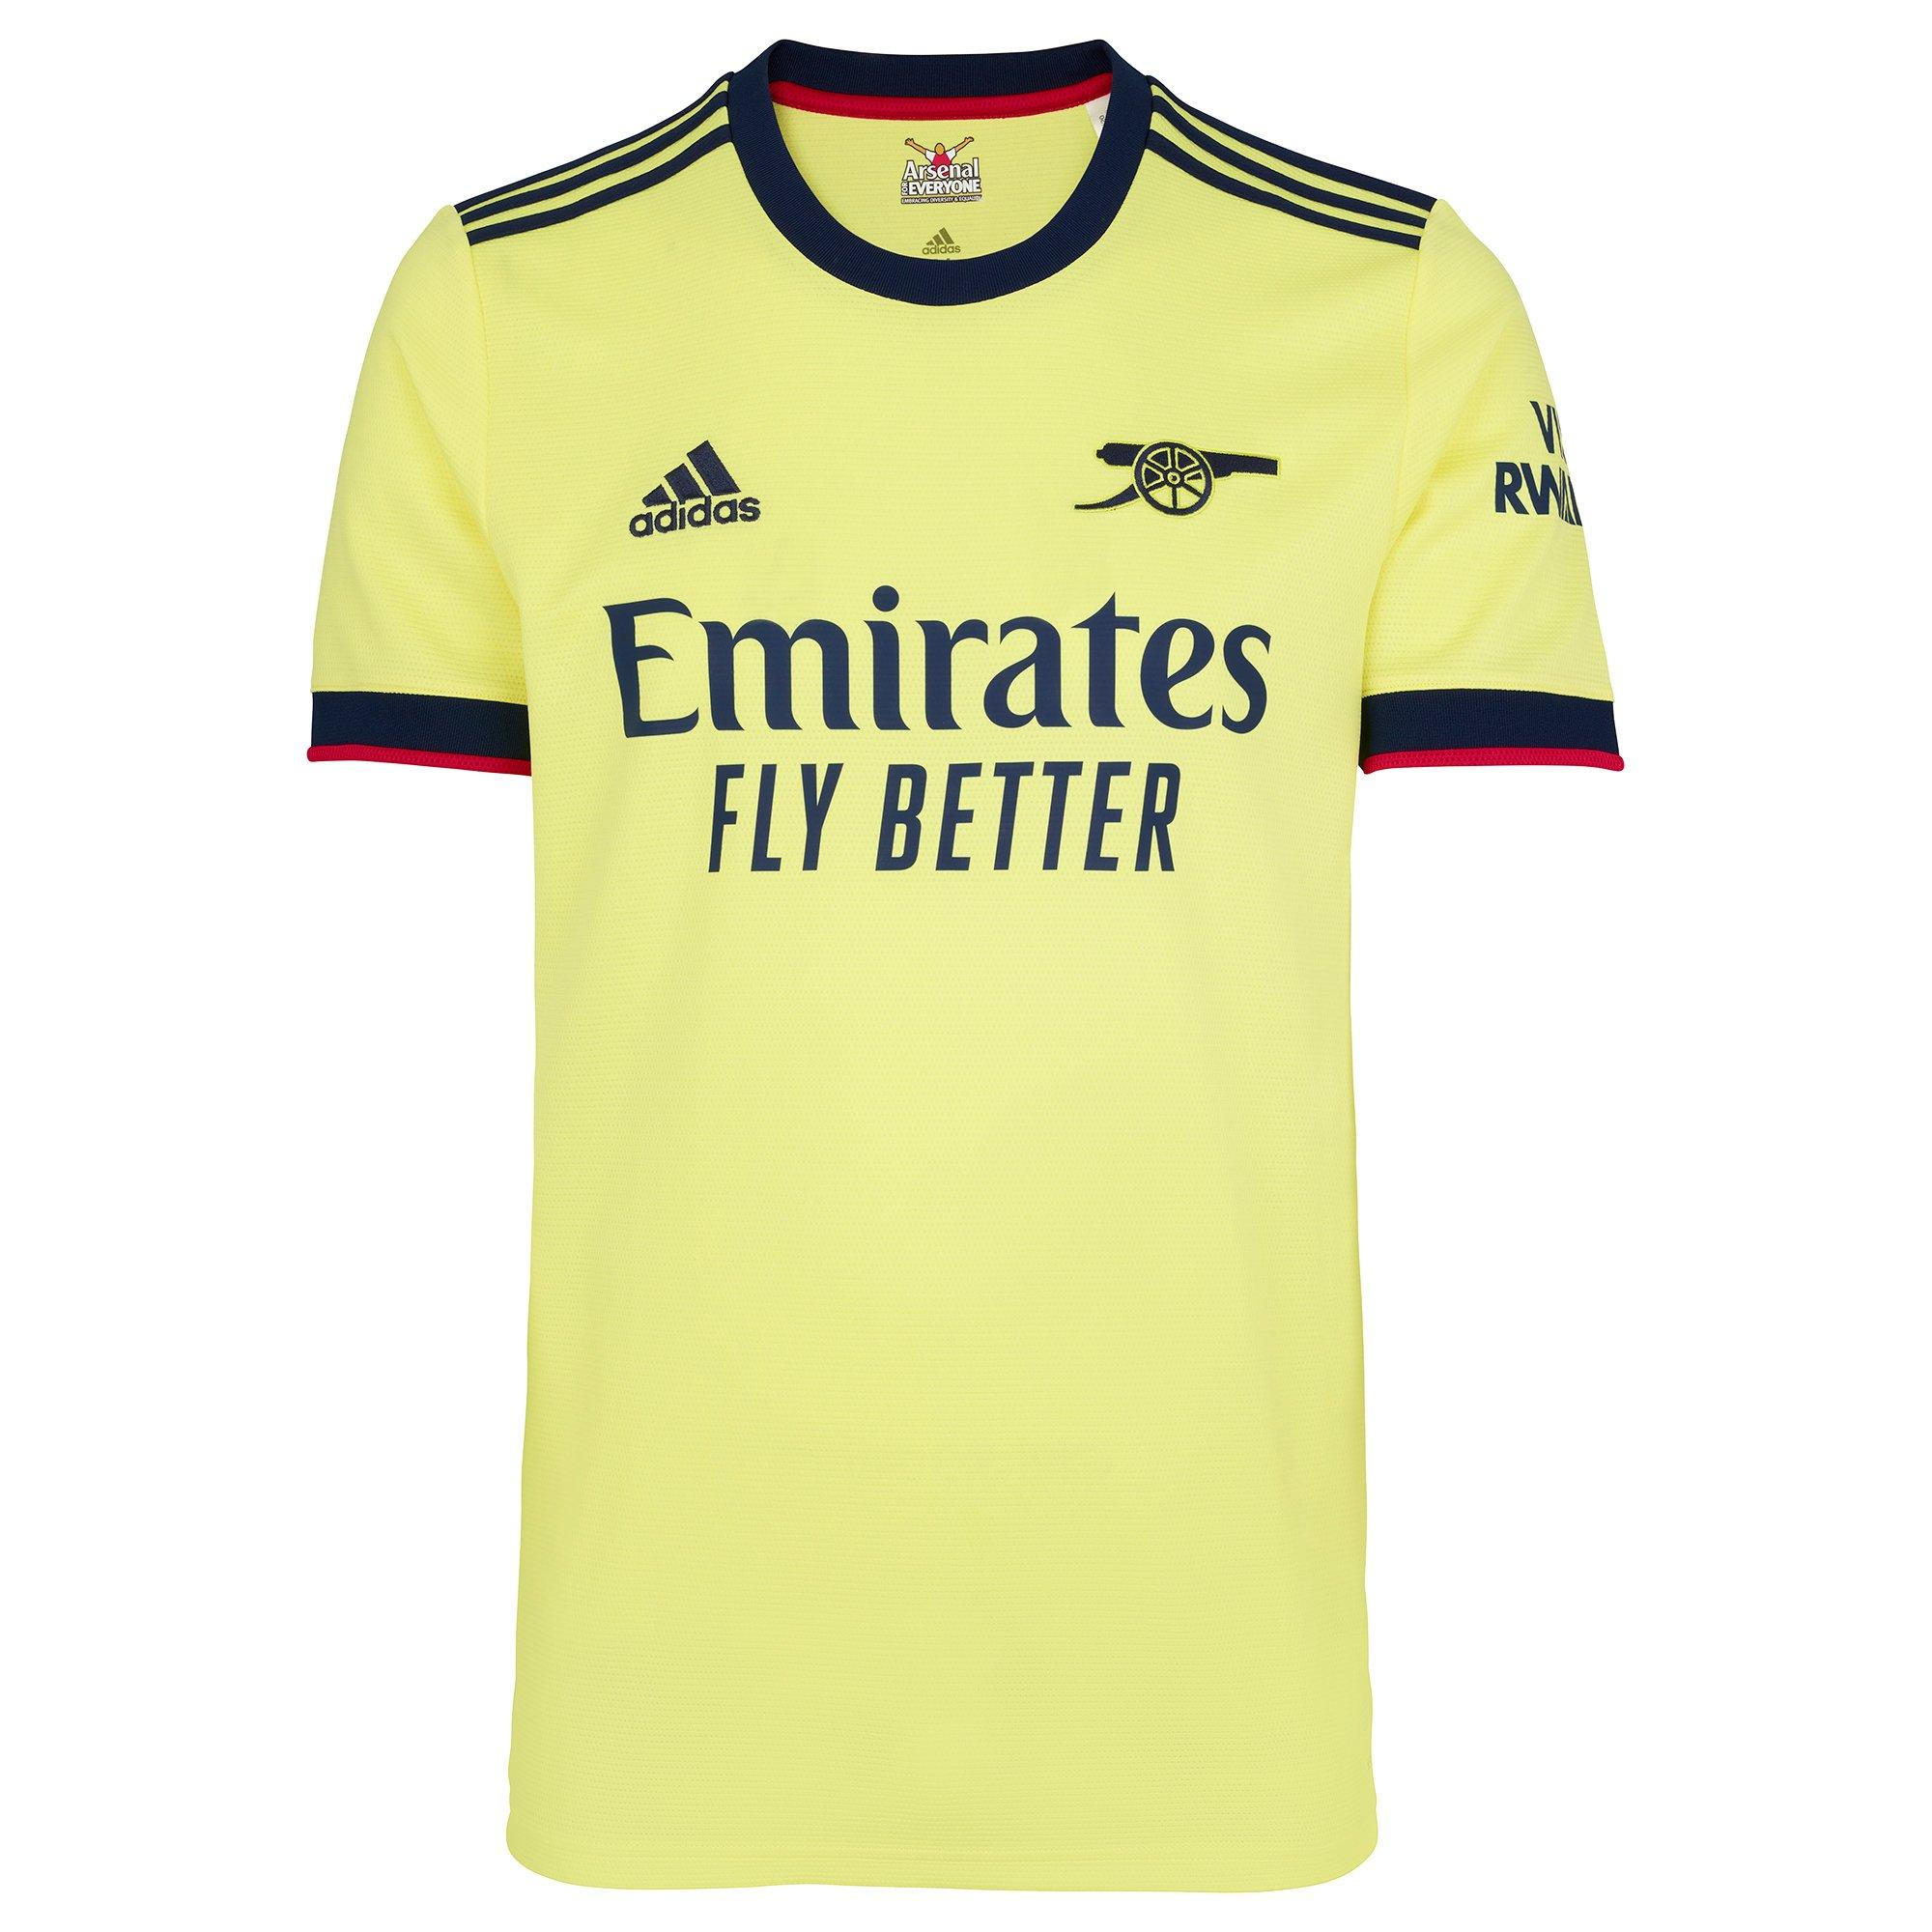 The Arsenal 21/22 Away Kit   Official Online Store